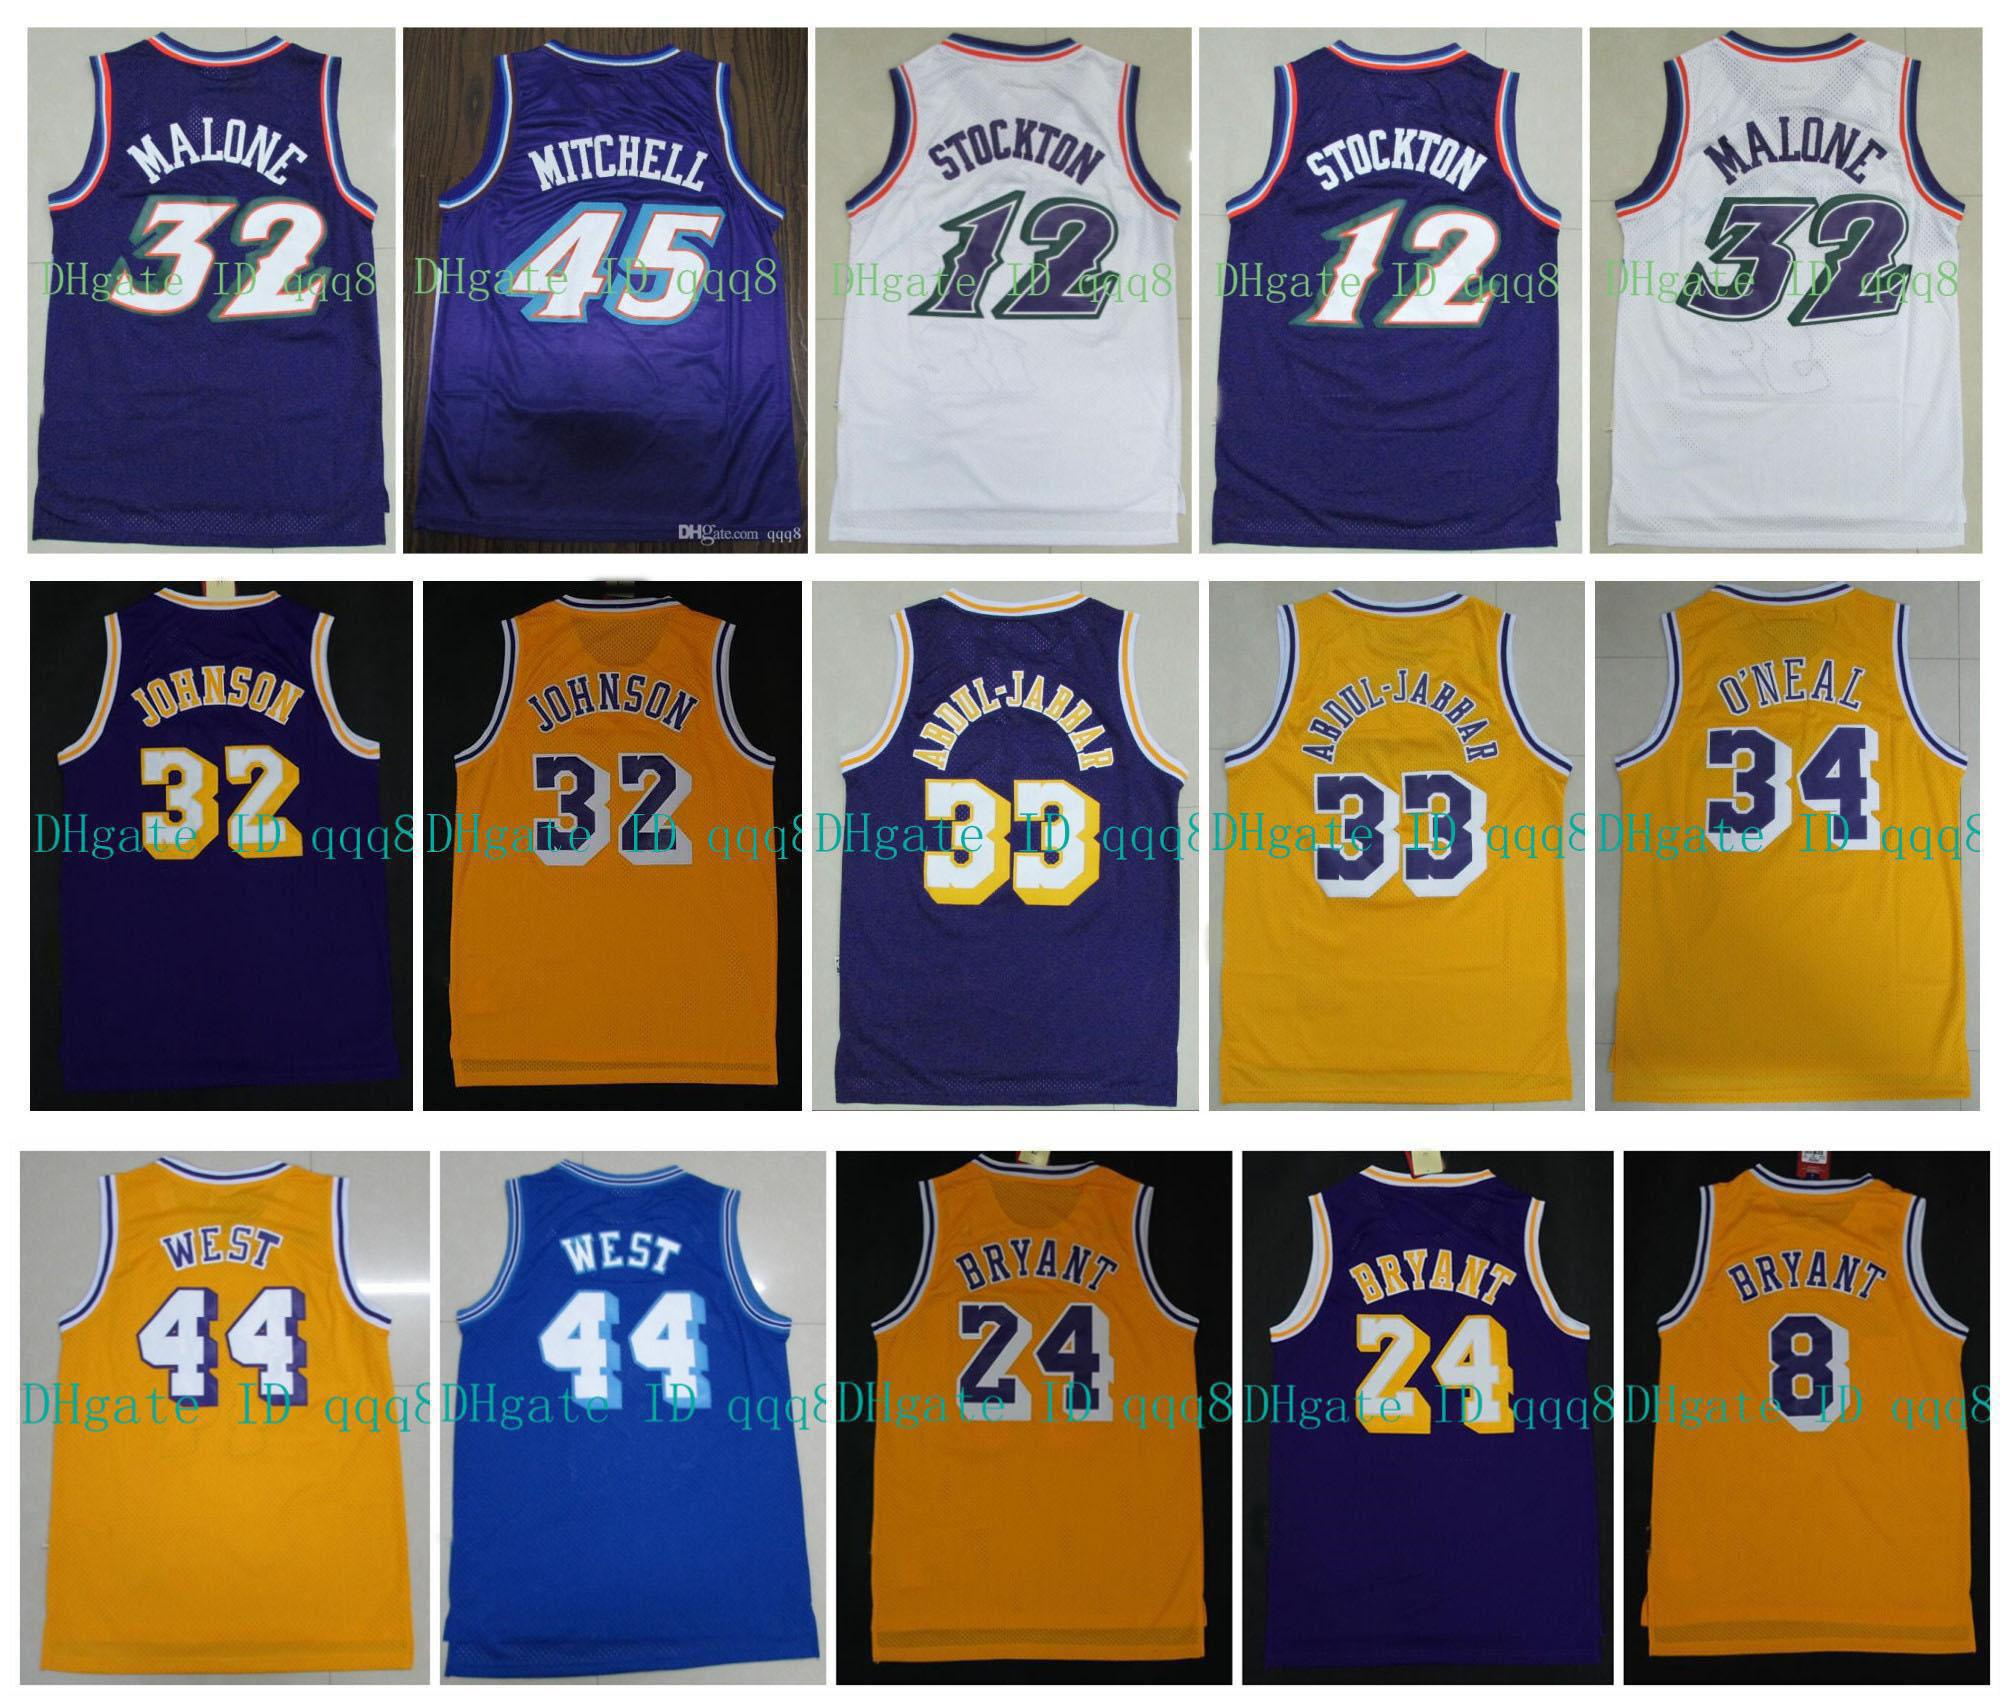 NCAA Basketball Donovan 45 Mitchell Jersey 32 Magic Johnson Karl 32 Malone John 12 Stockton Jerry 44 West 33 Abdul Jabbar 34 Shaquille Oneal